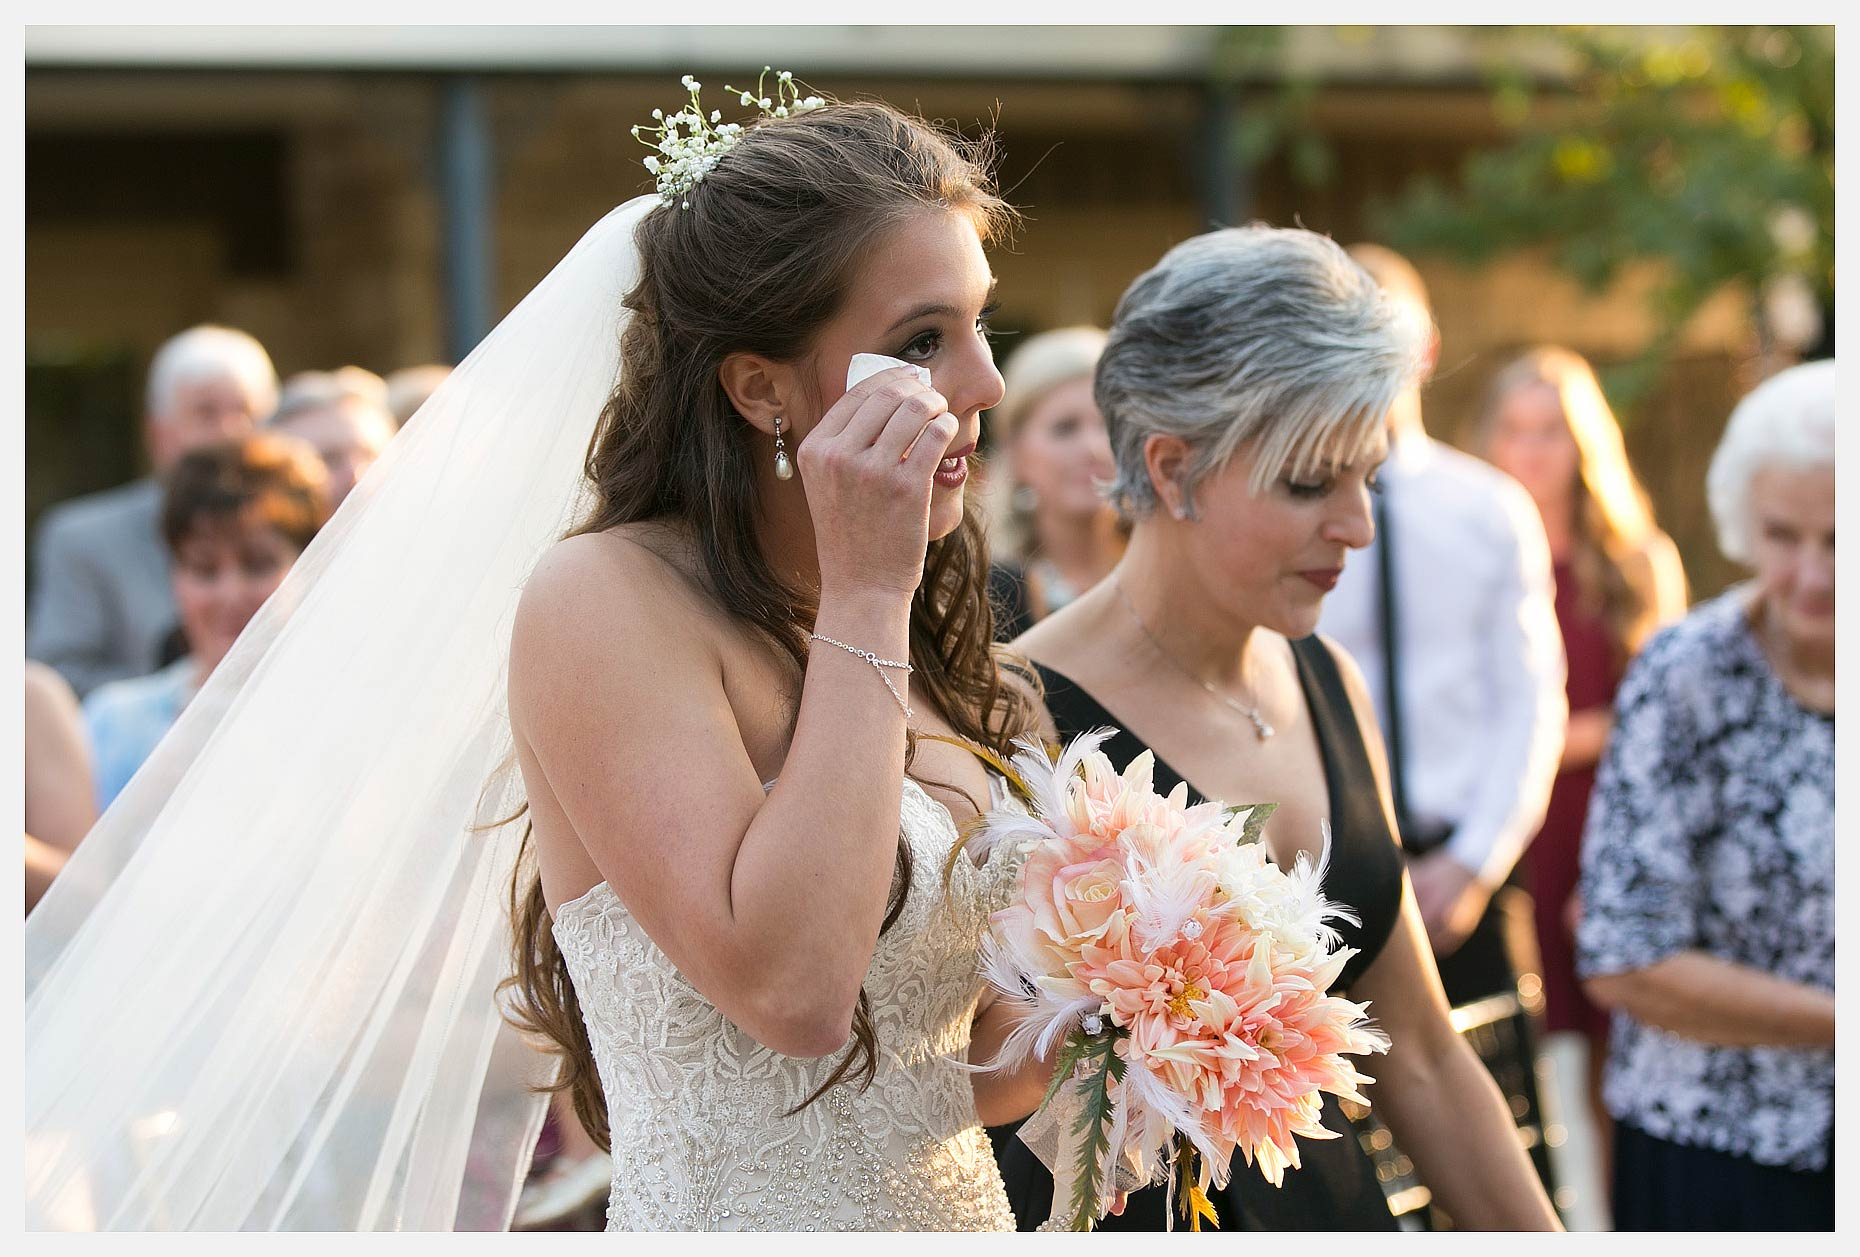 Madison-Carver-Wedding-by-Stephen-Masker-Photography-0077